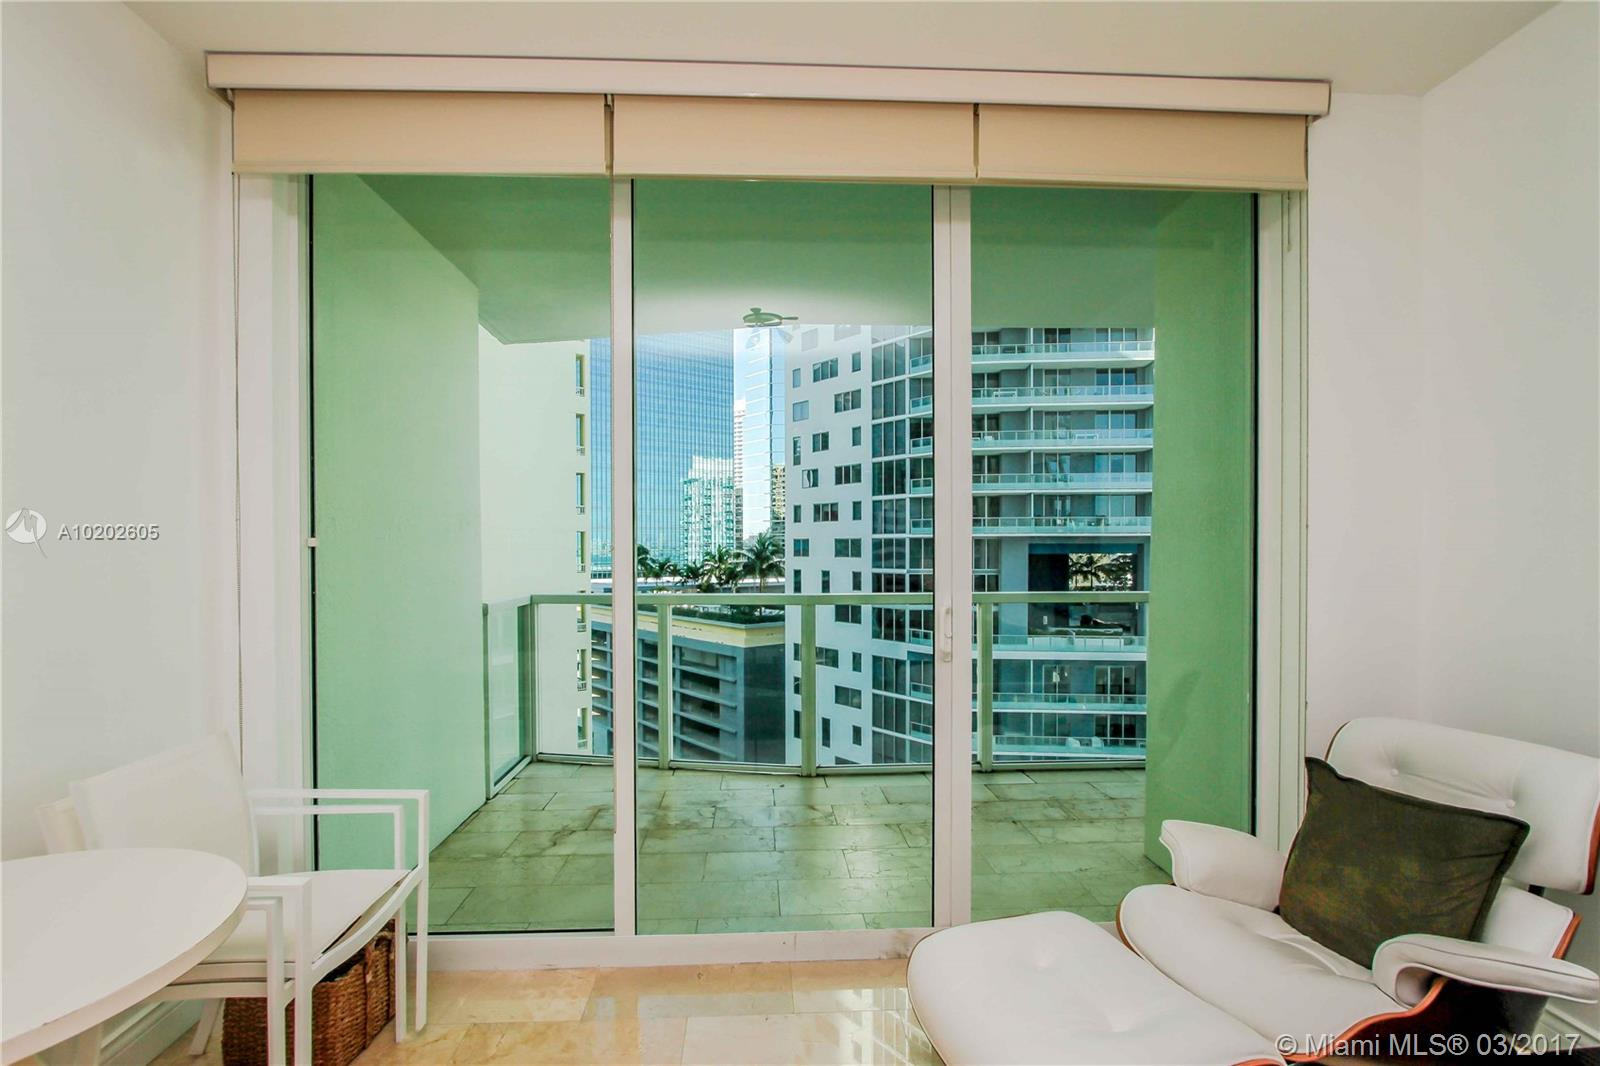 Emerald at Brickell image #5